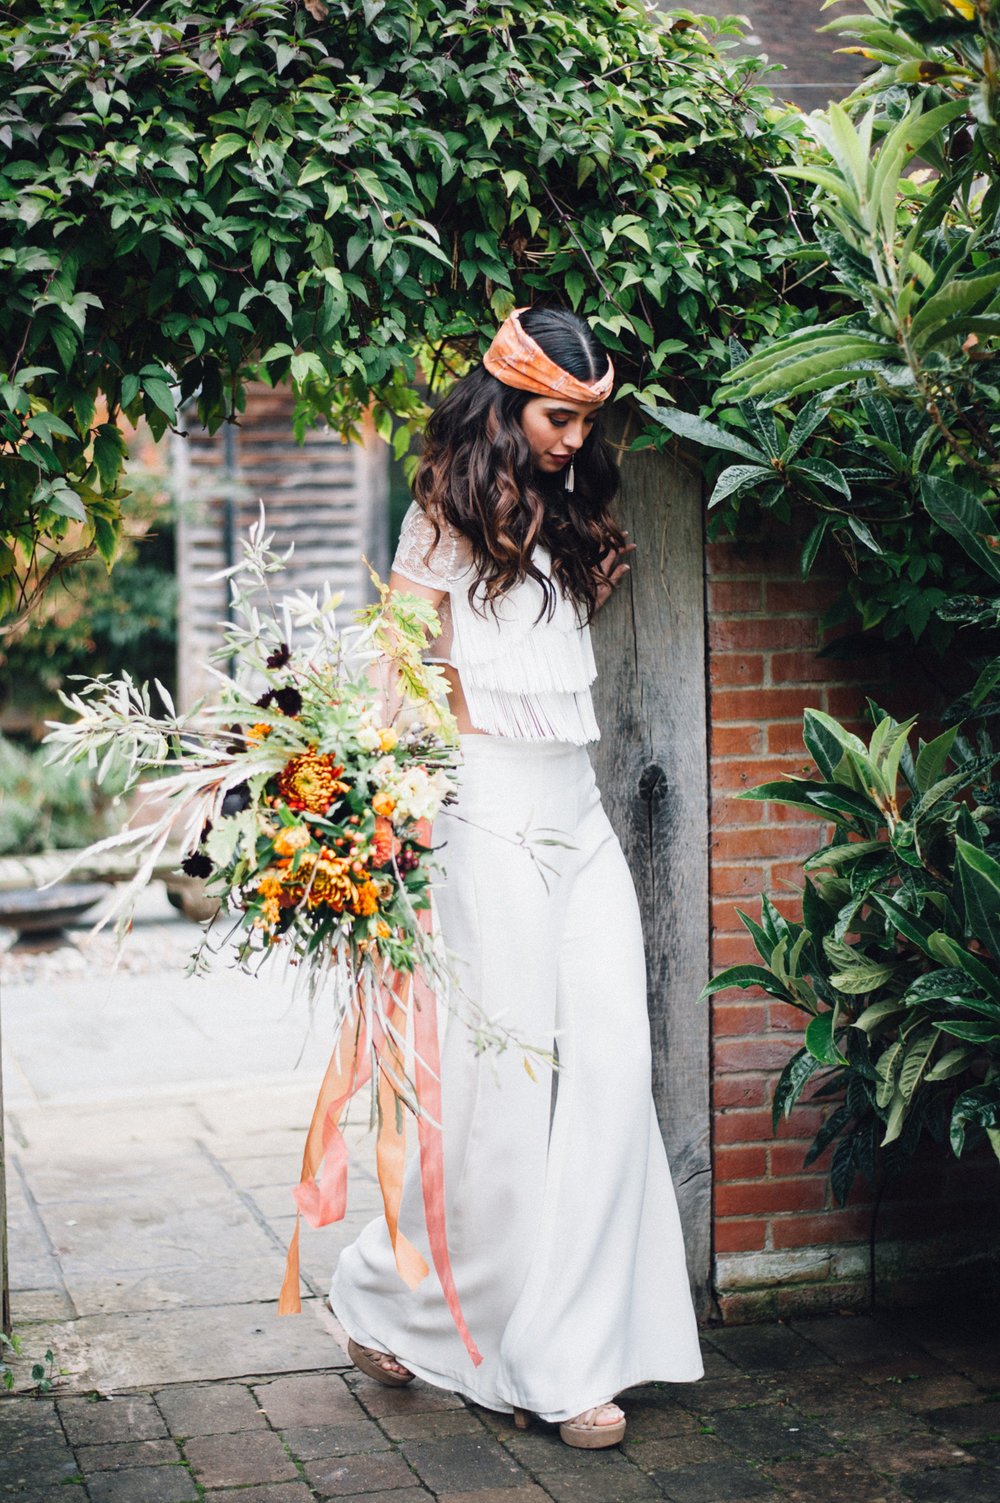 70's bohemian vibes from The Copse shoot, bouquet by WILLOWGOLD ribbons by Kate Cullen.